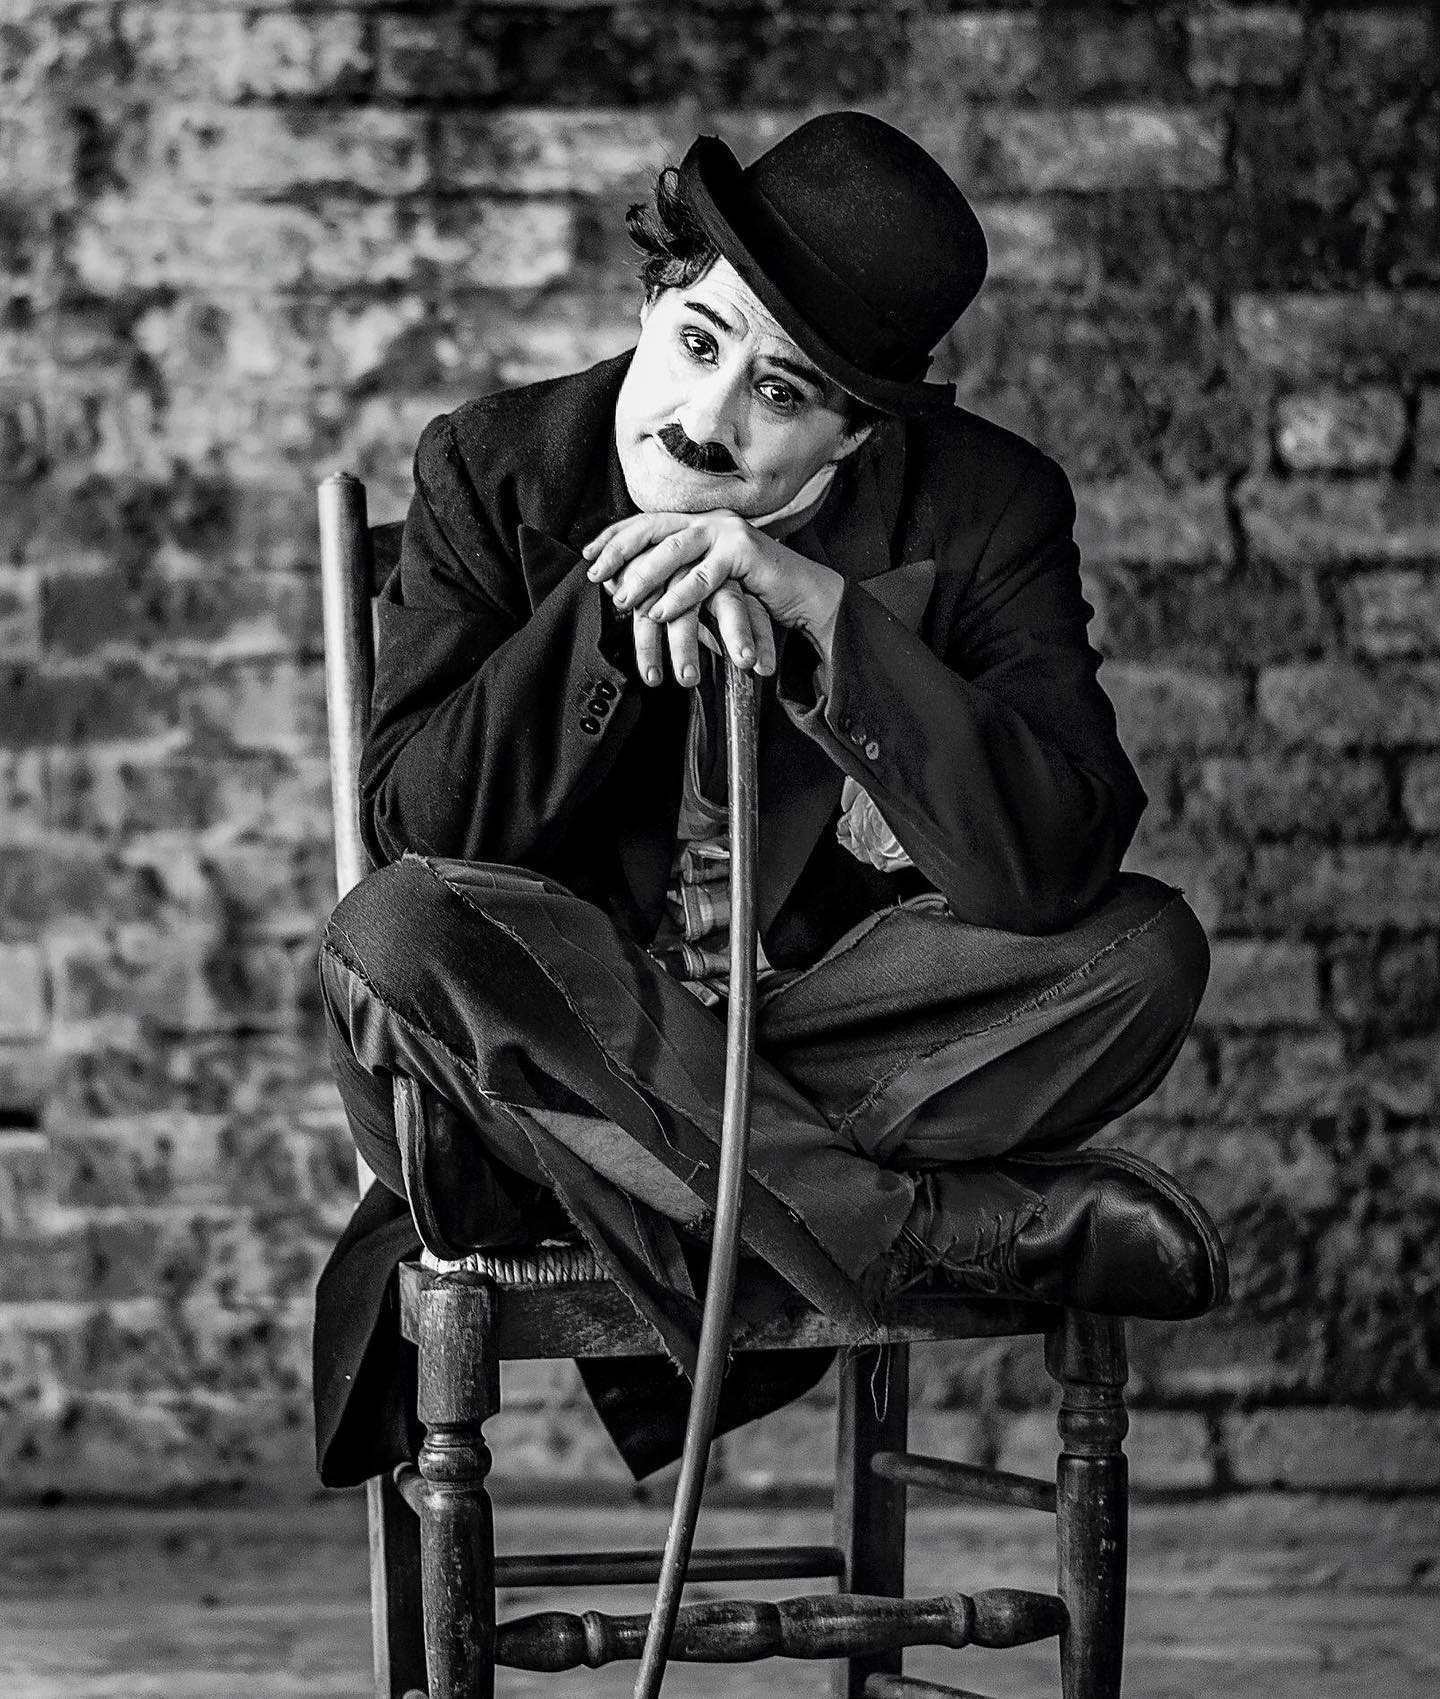 Jack Cutler as Charlie Chaplin by Anna Backlund